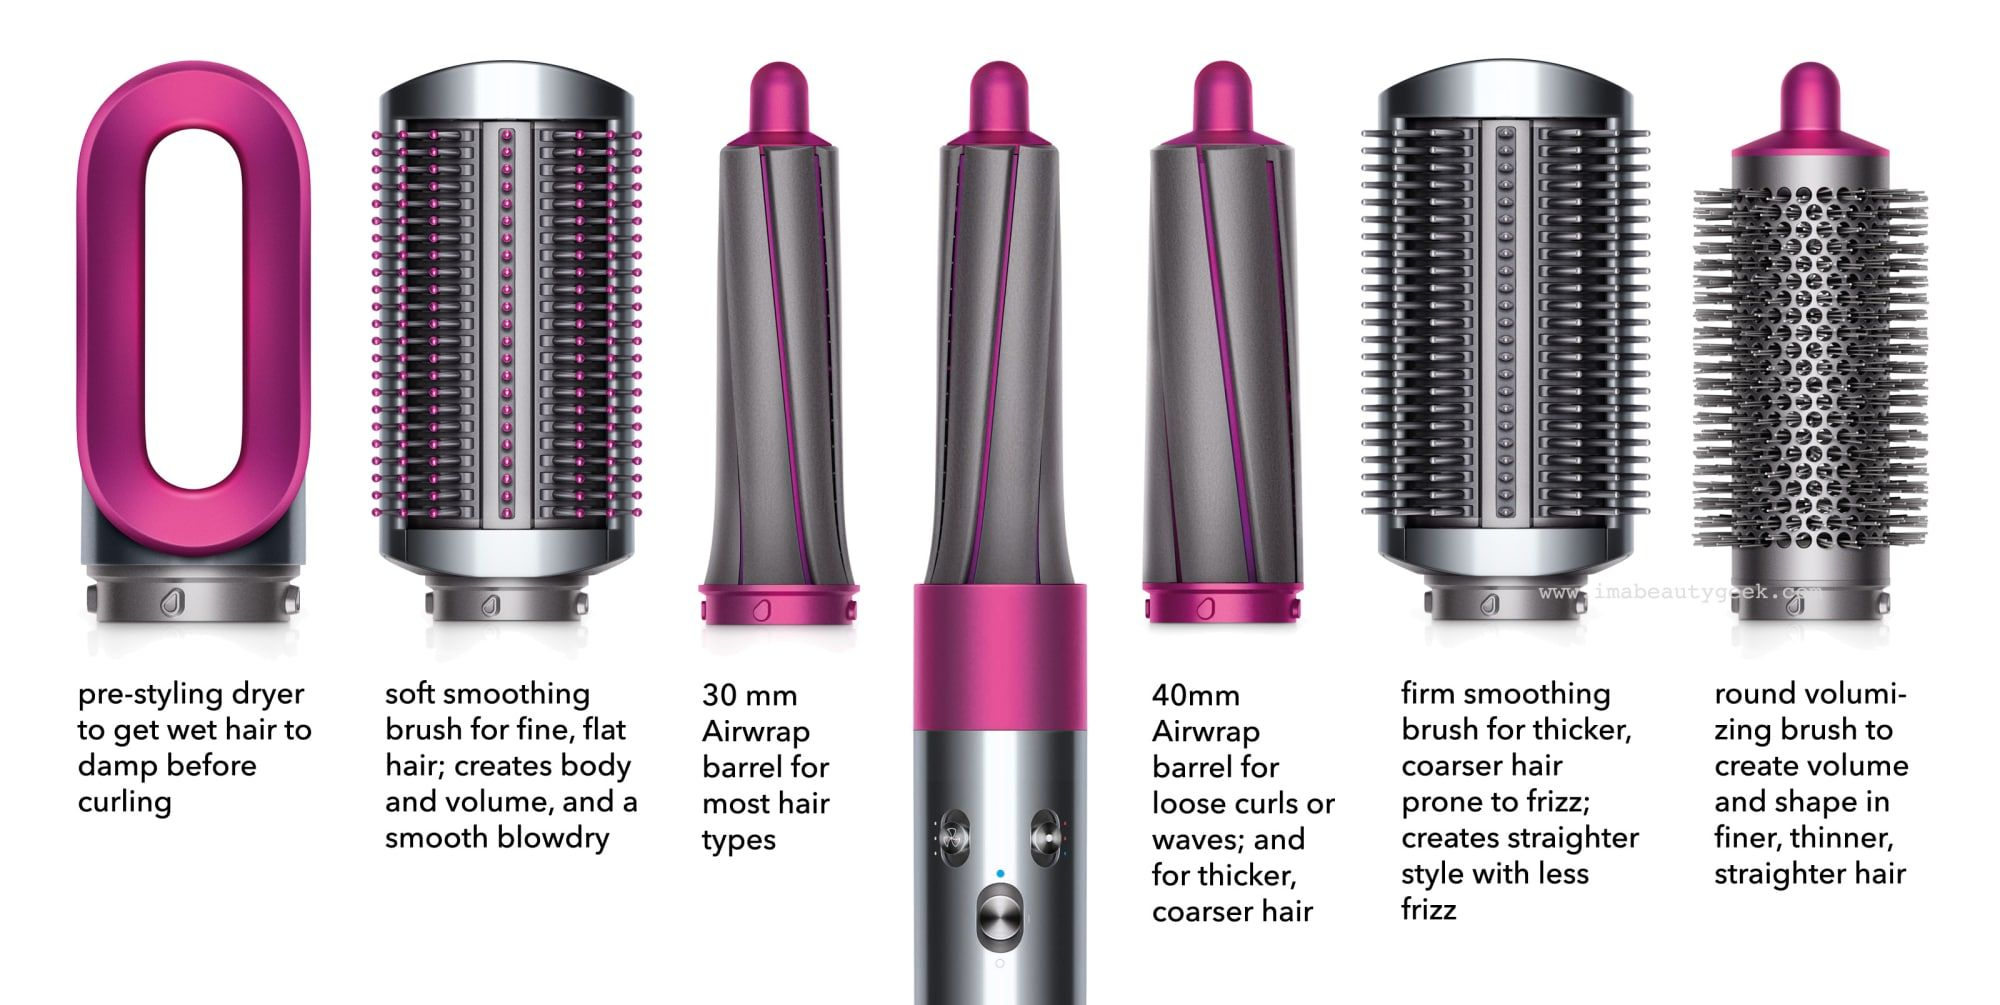 THE DYSON AIRWRAP MINDBLOWING Dyson hair dryer, Hair